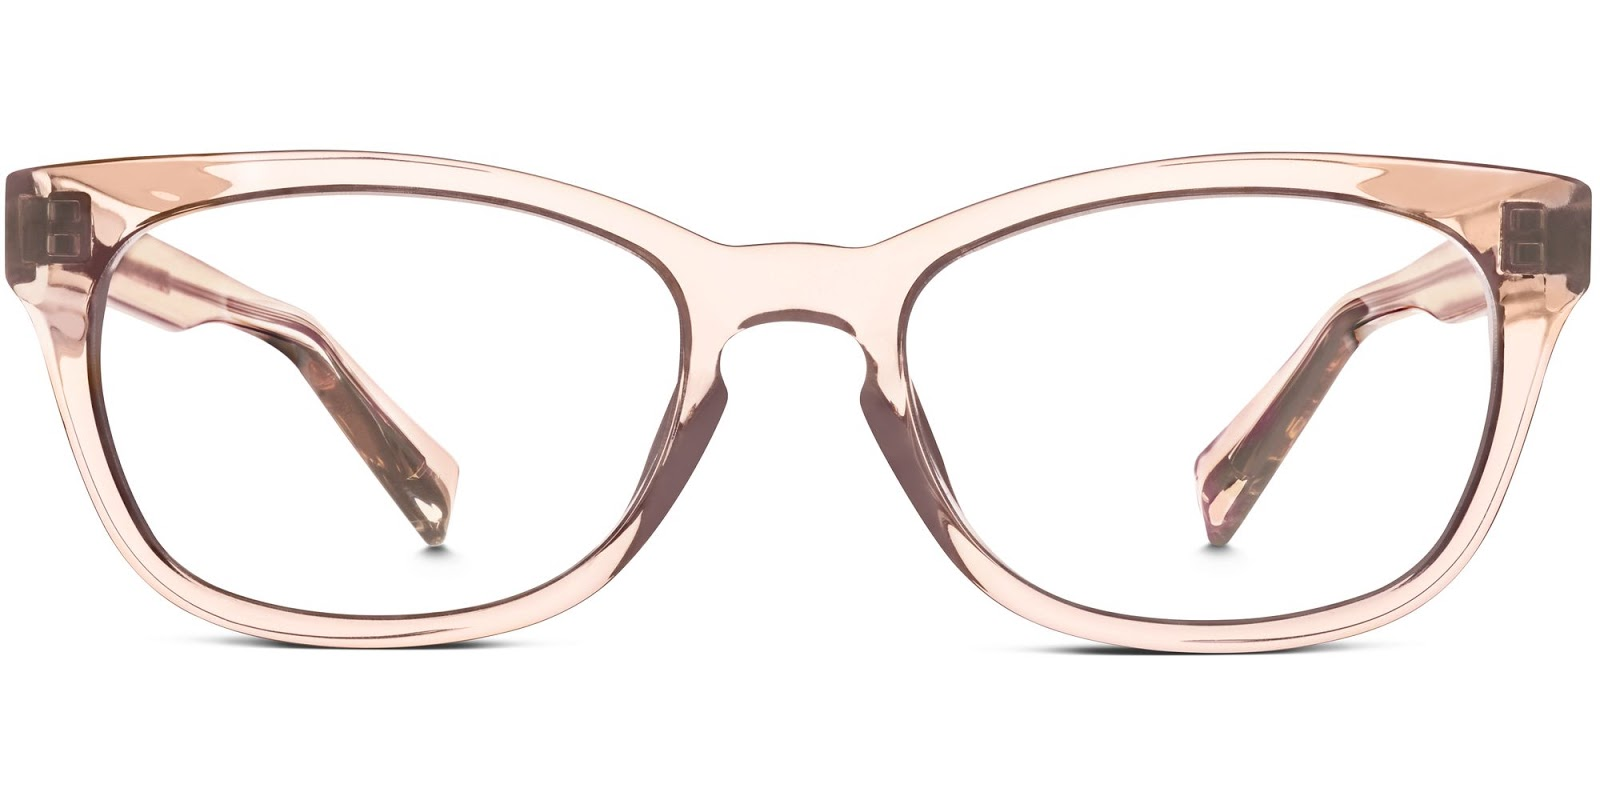 Not Just Another Southern Gal: Warby Parker Eye Wear